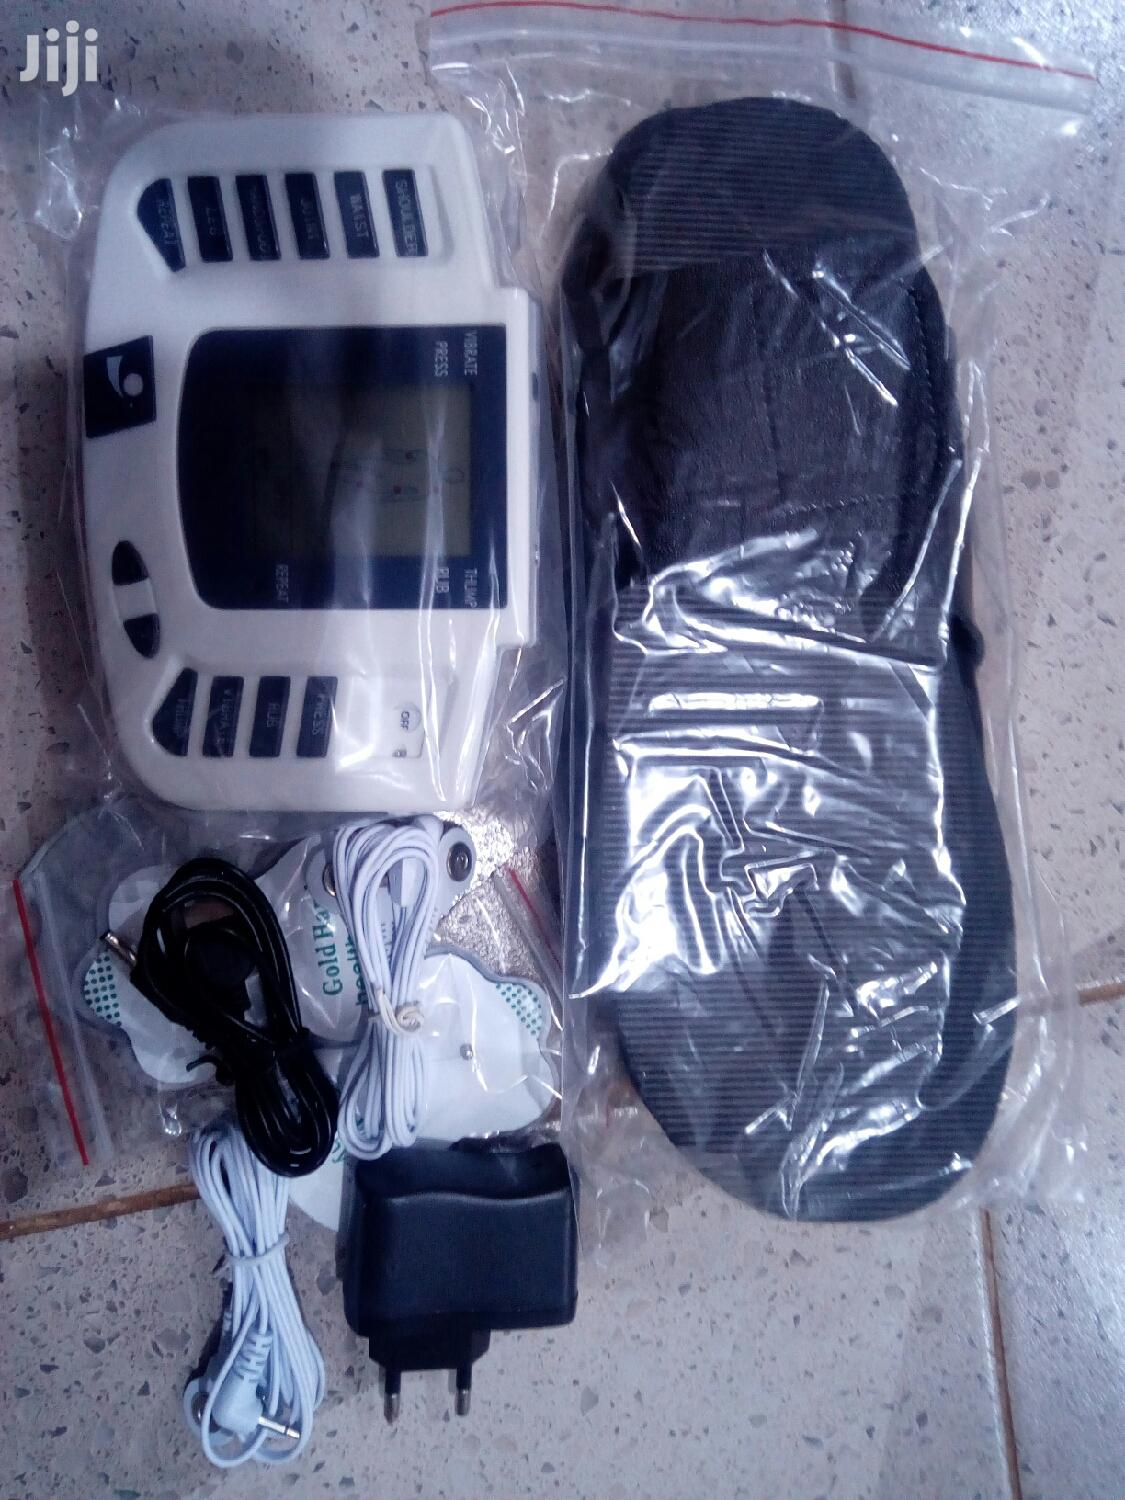 Eectronic Pulse Massager (Epm)* | Tools & Accessories for sale in Adenta Municipal, Greater Accra, Ghana